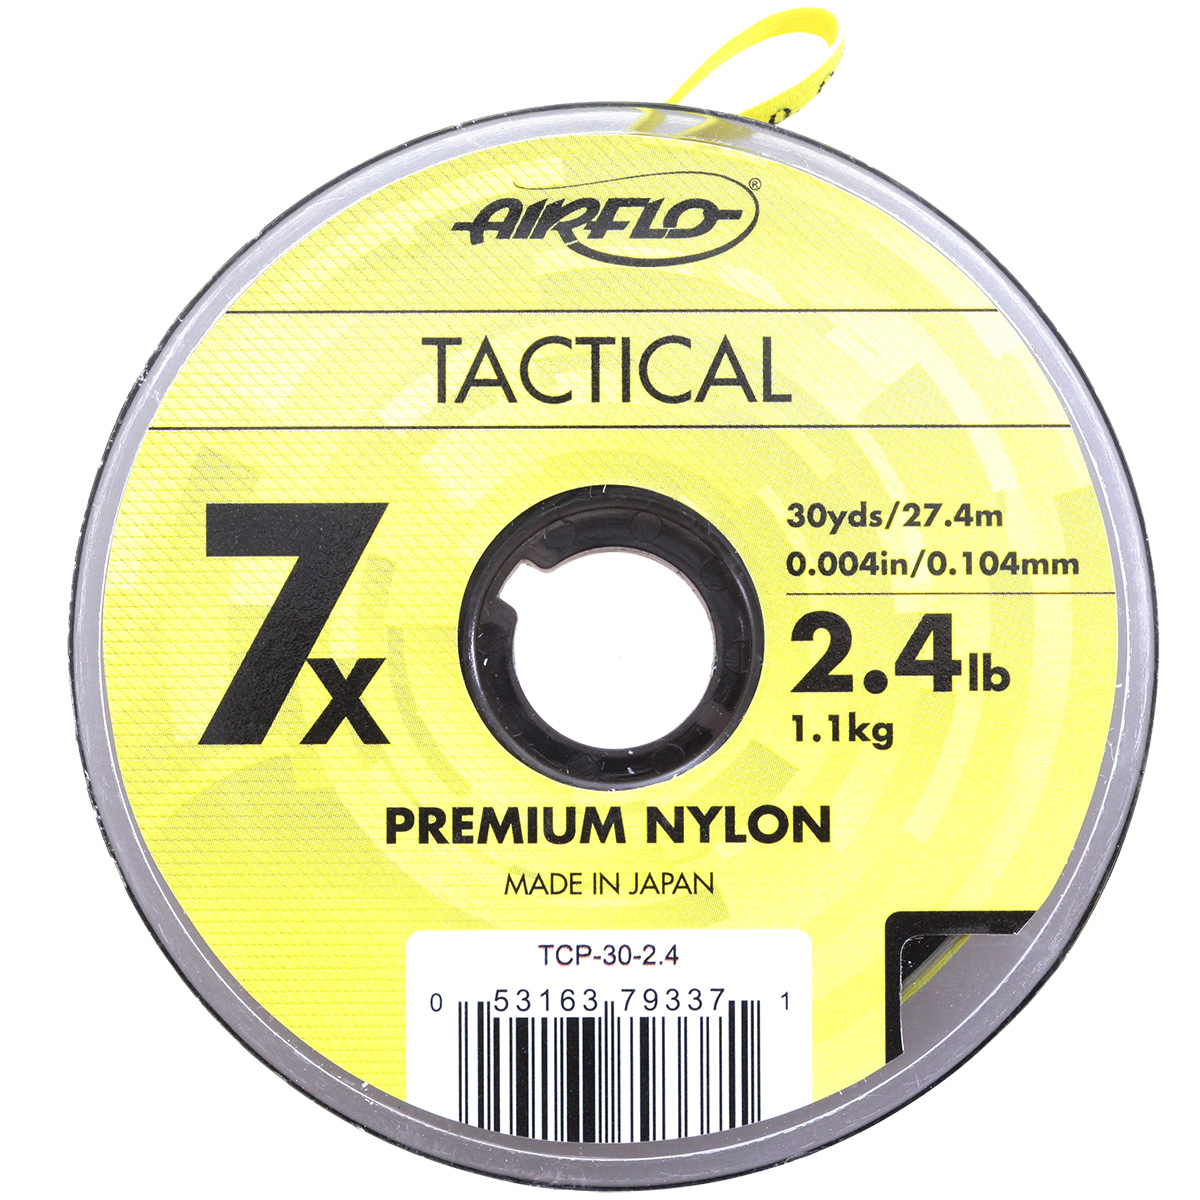 Airflo Tactical Tippet Material